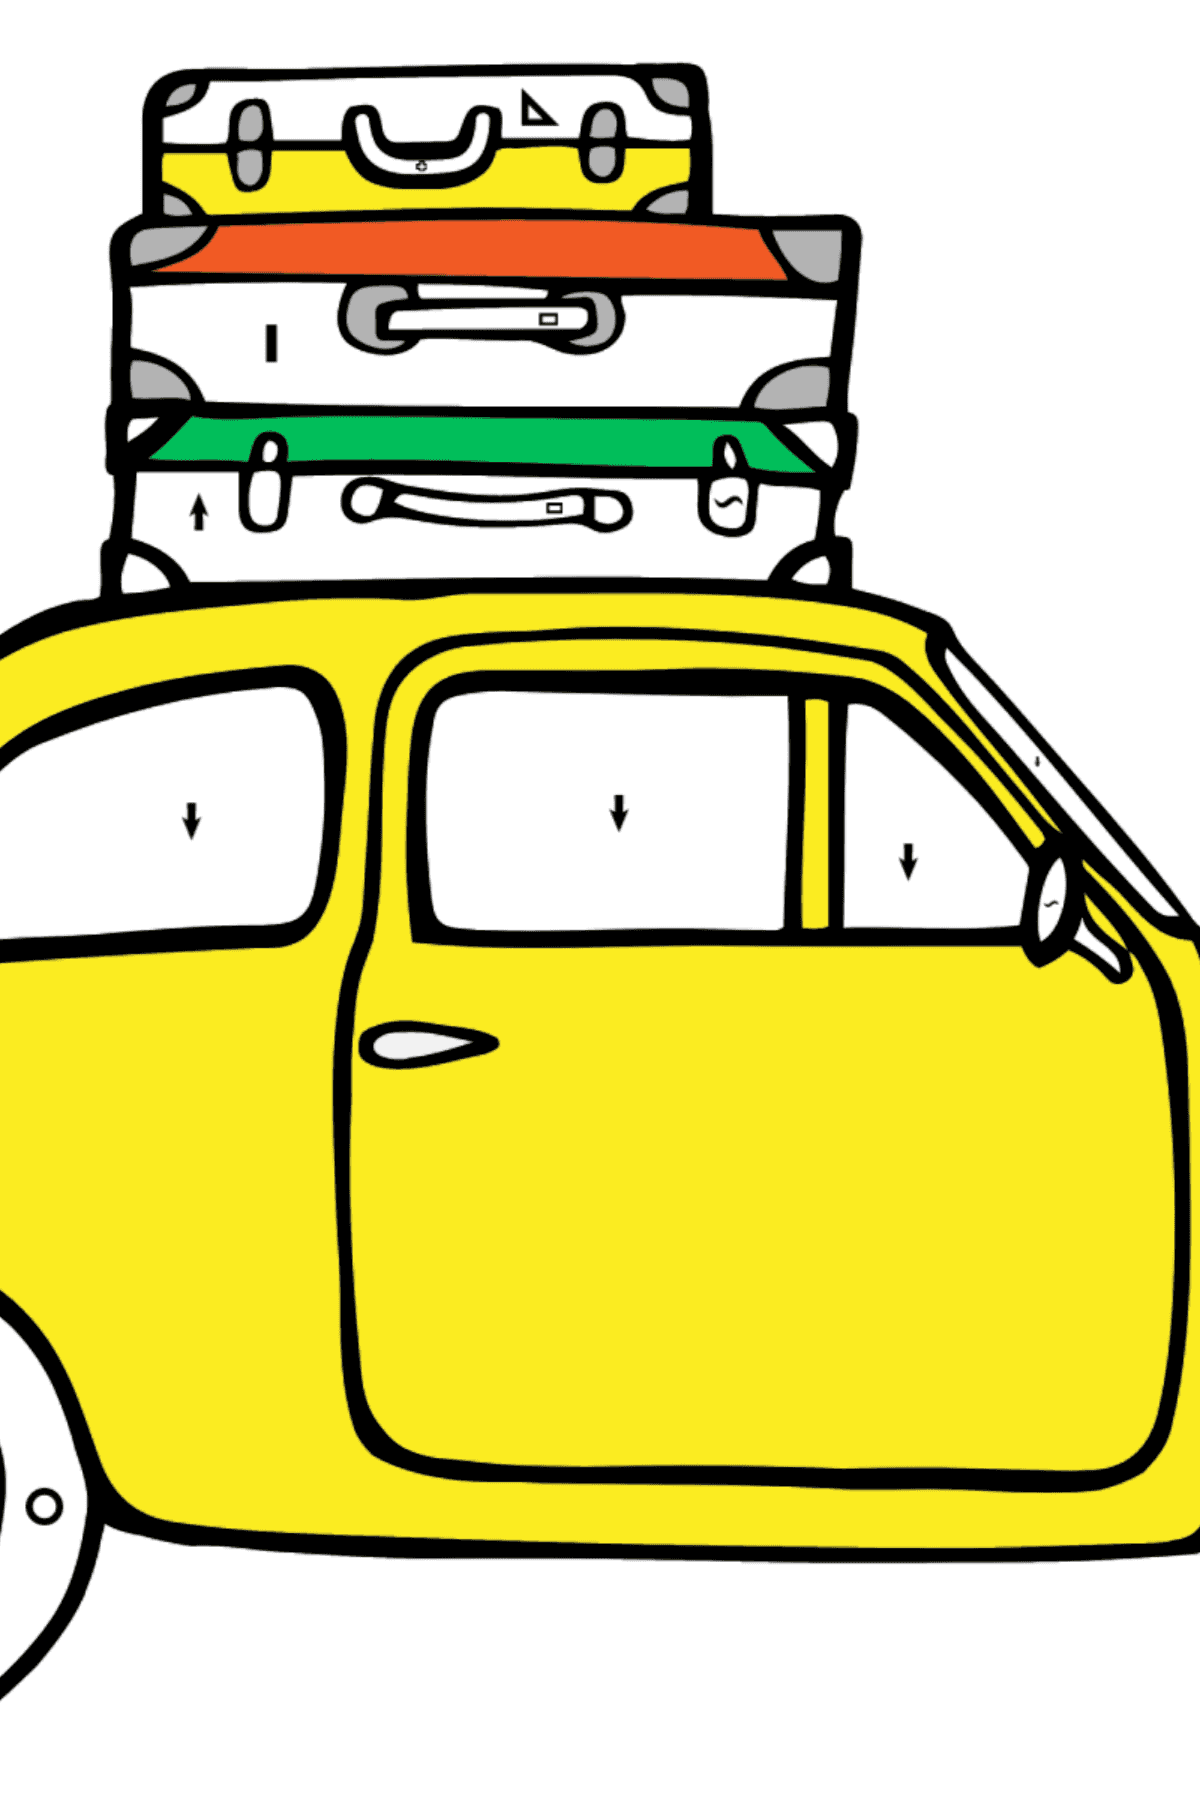 Fiat 500 car coloring page - Coloring by Symbols and Geometric Shapes for Kids